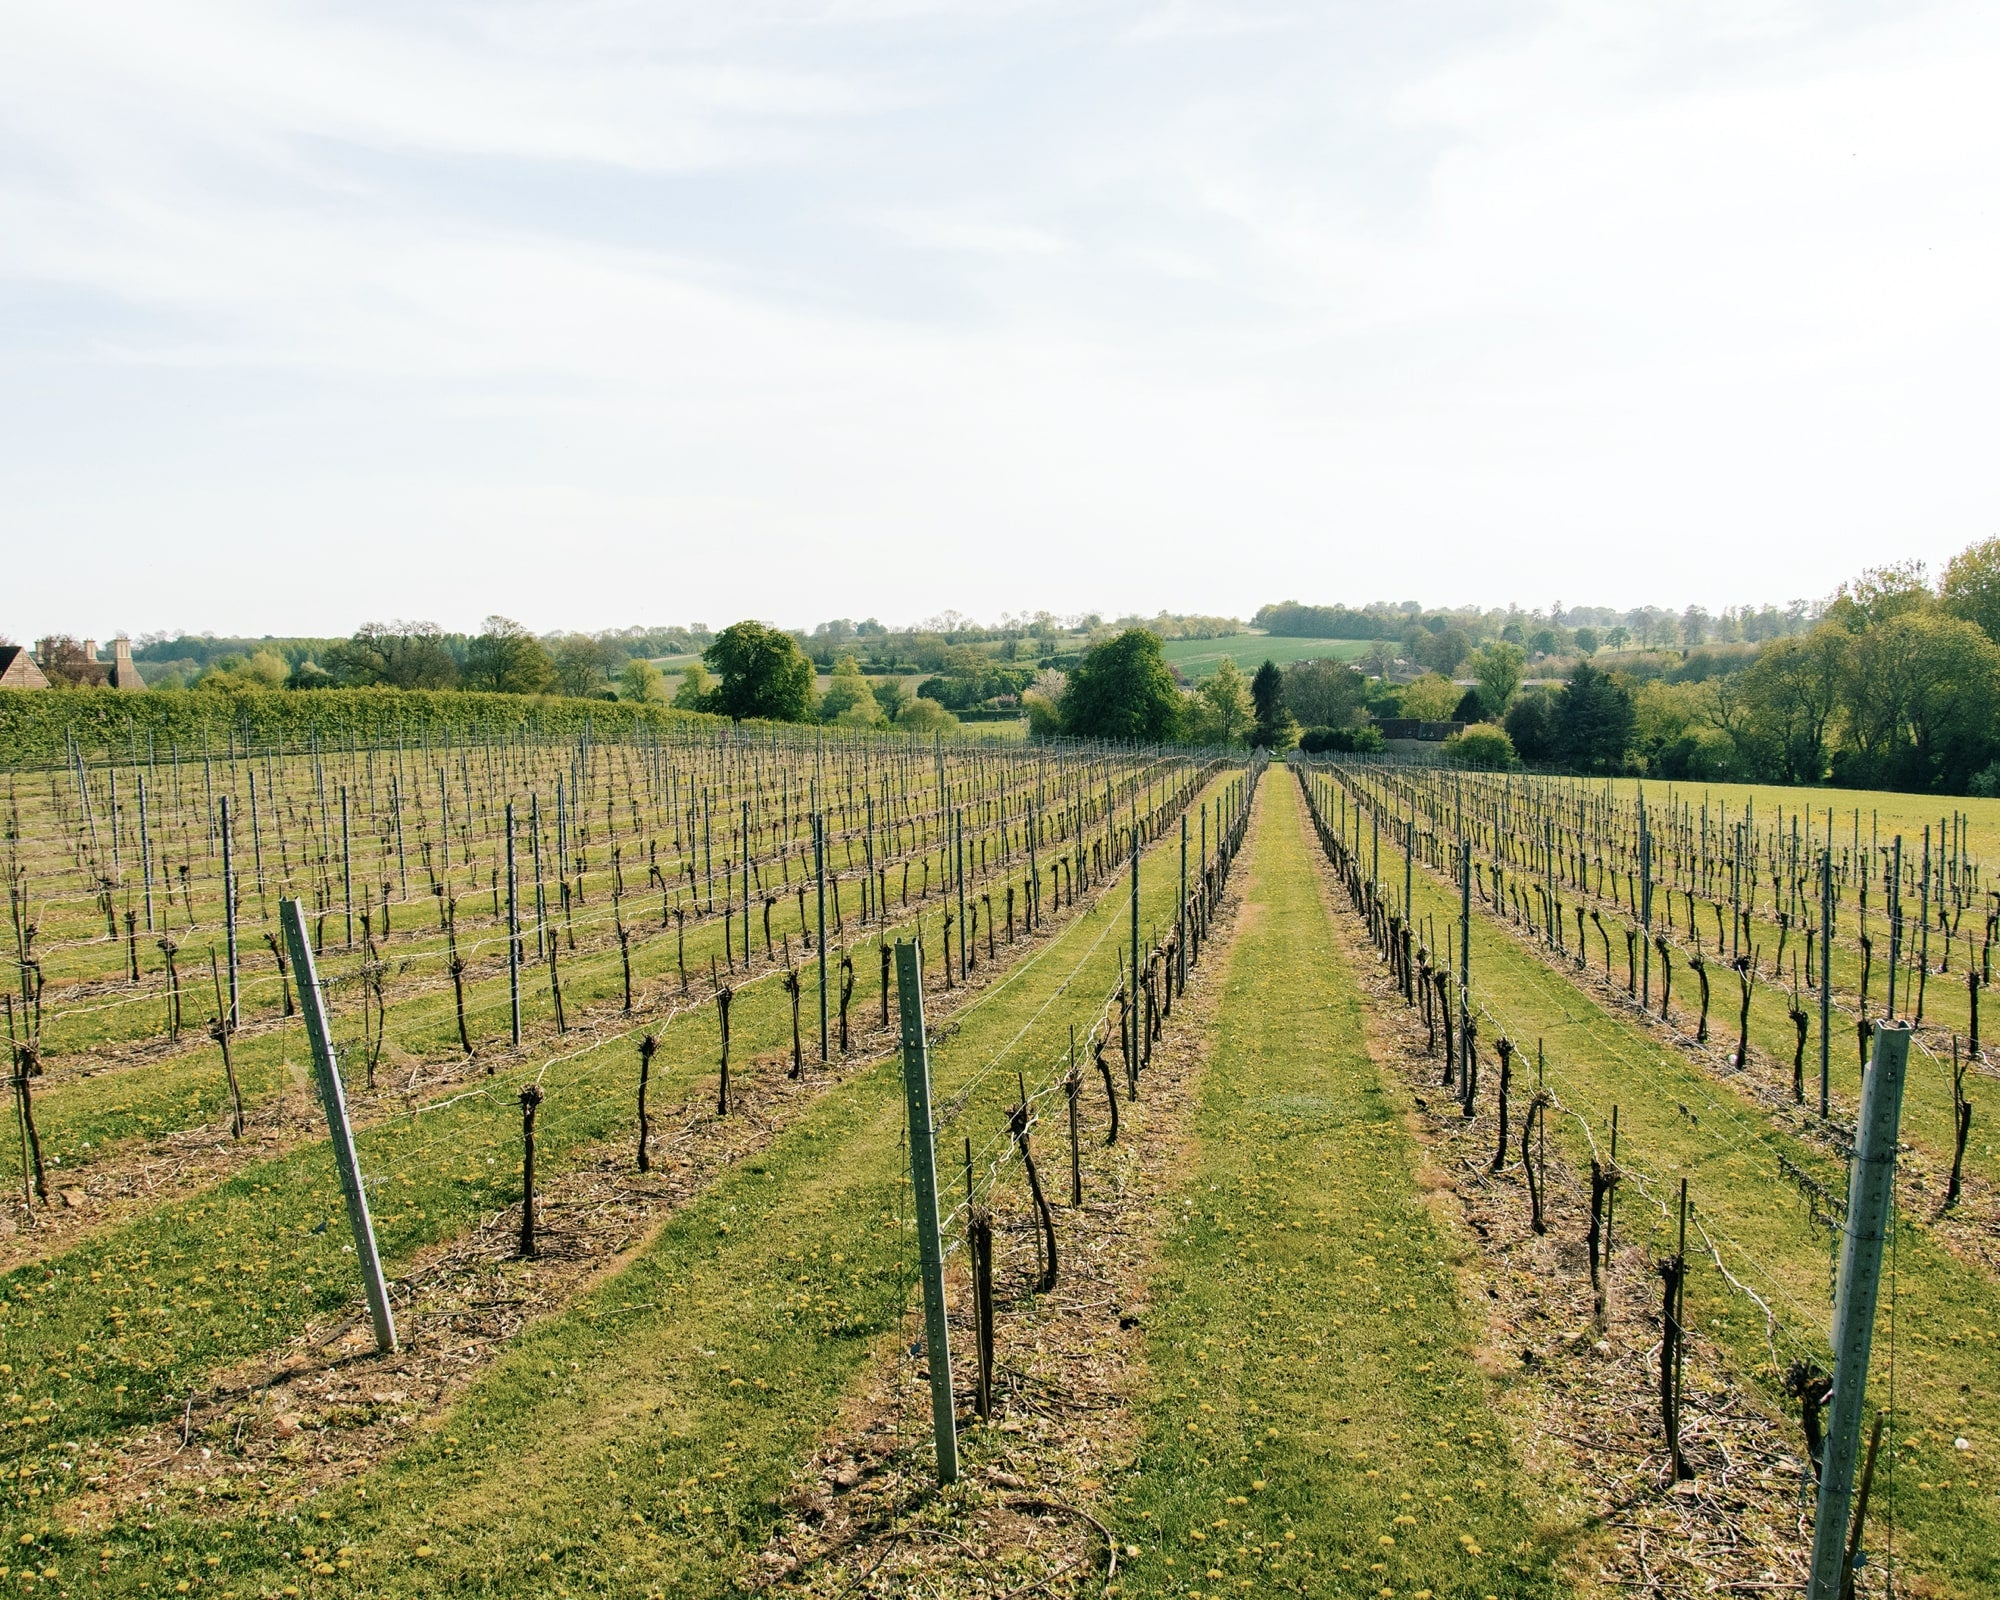 Lowick Vineyard, an English family vineyard in the heart of Lowick, Northamptonshire